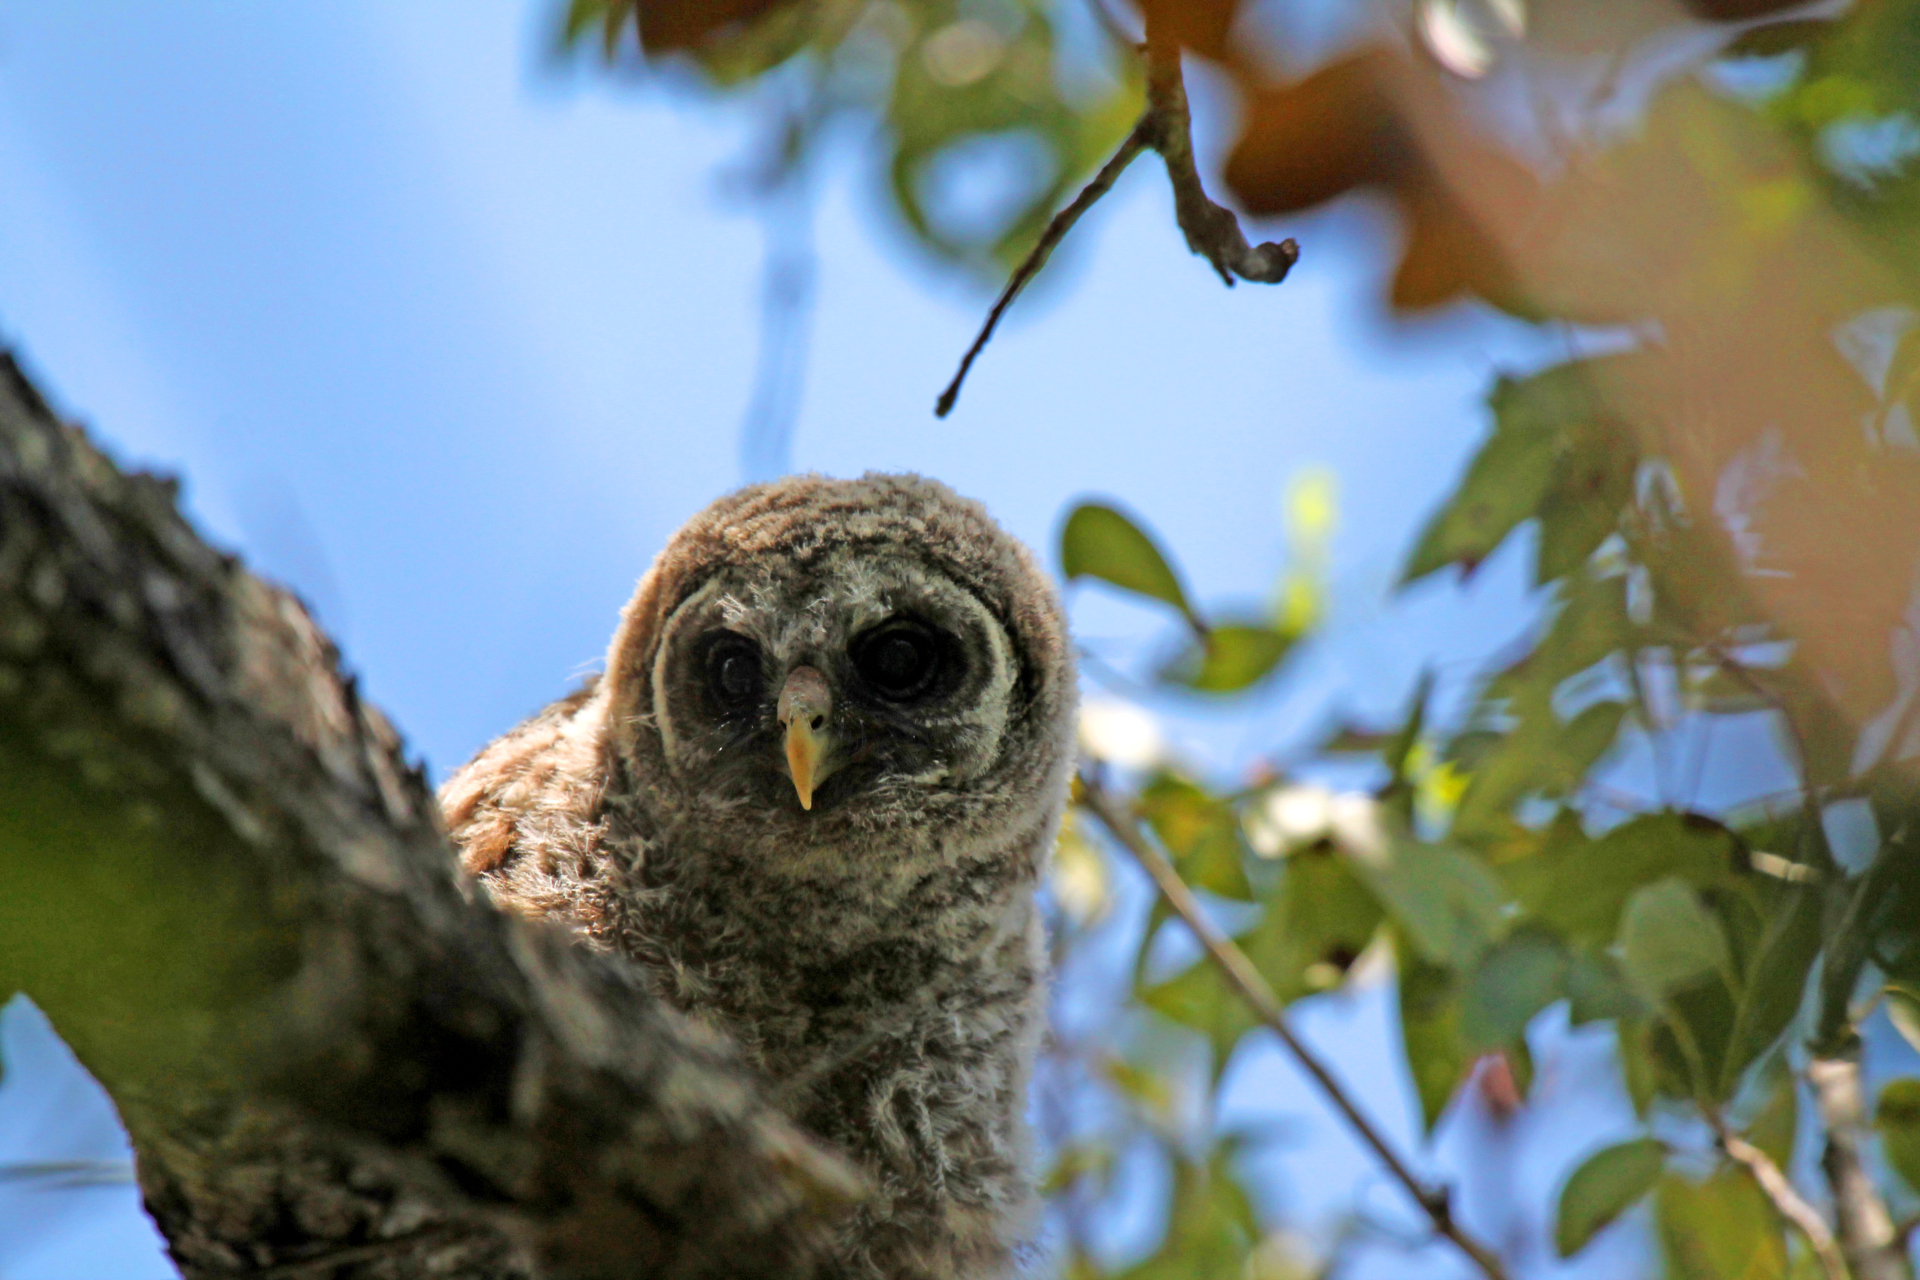 Baby Barred Owl is Adorable